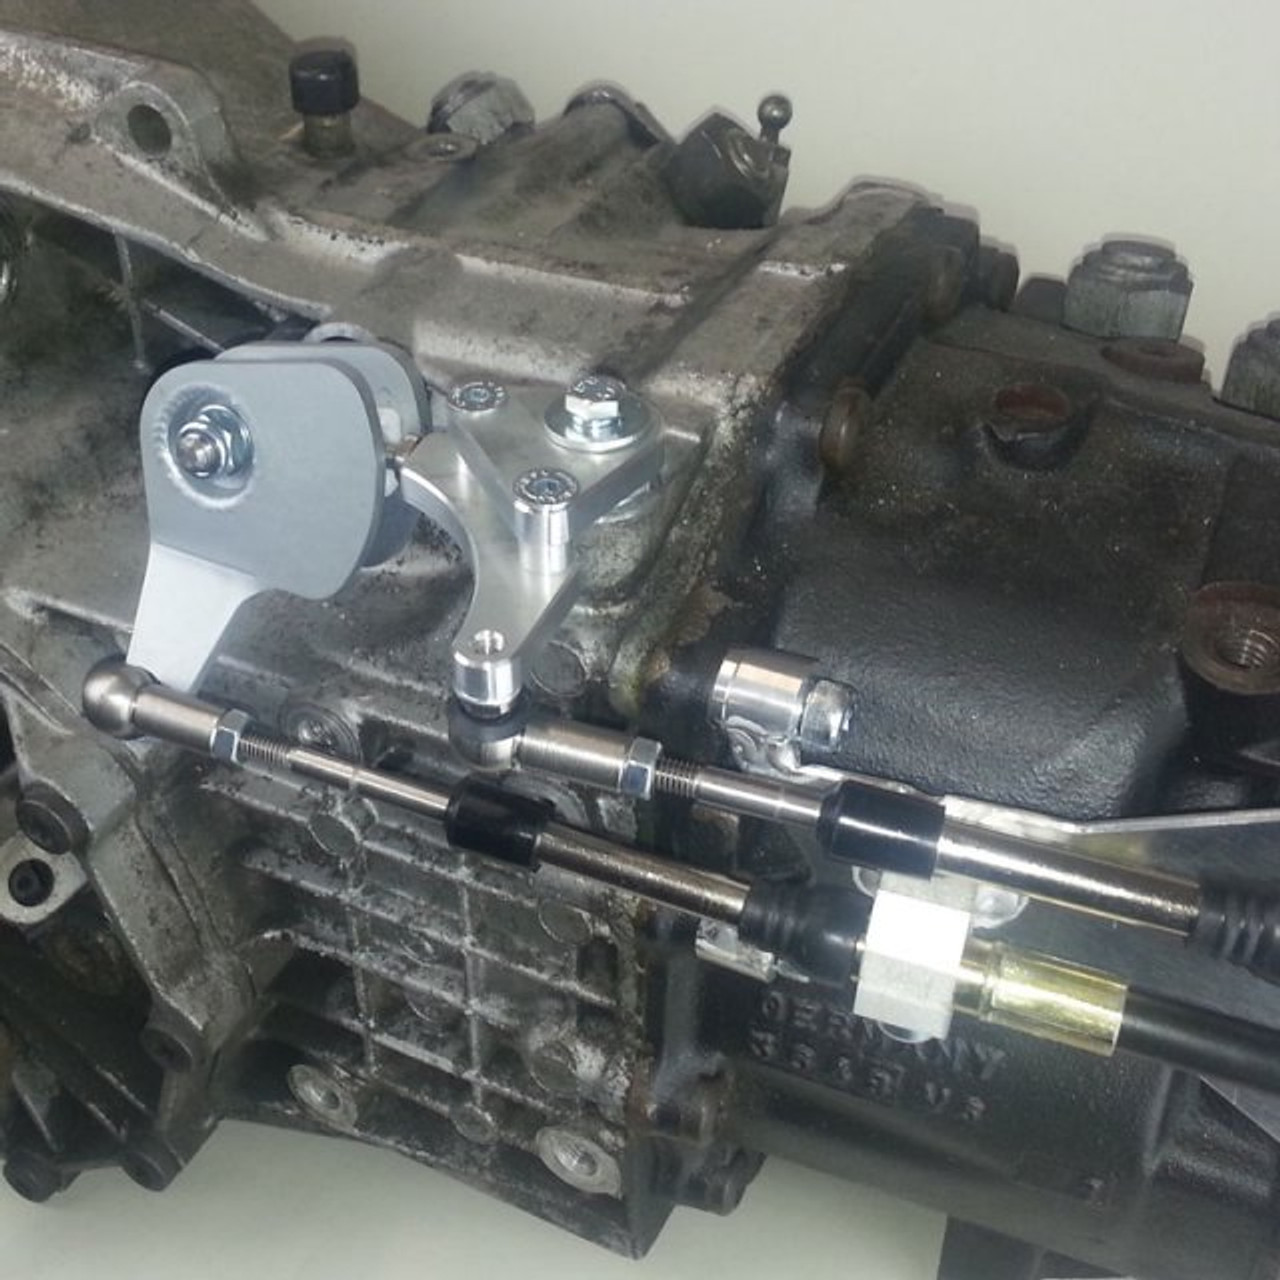 CAE Ultra Shifter forAudi 01E Gearboxes detail 3